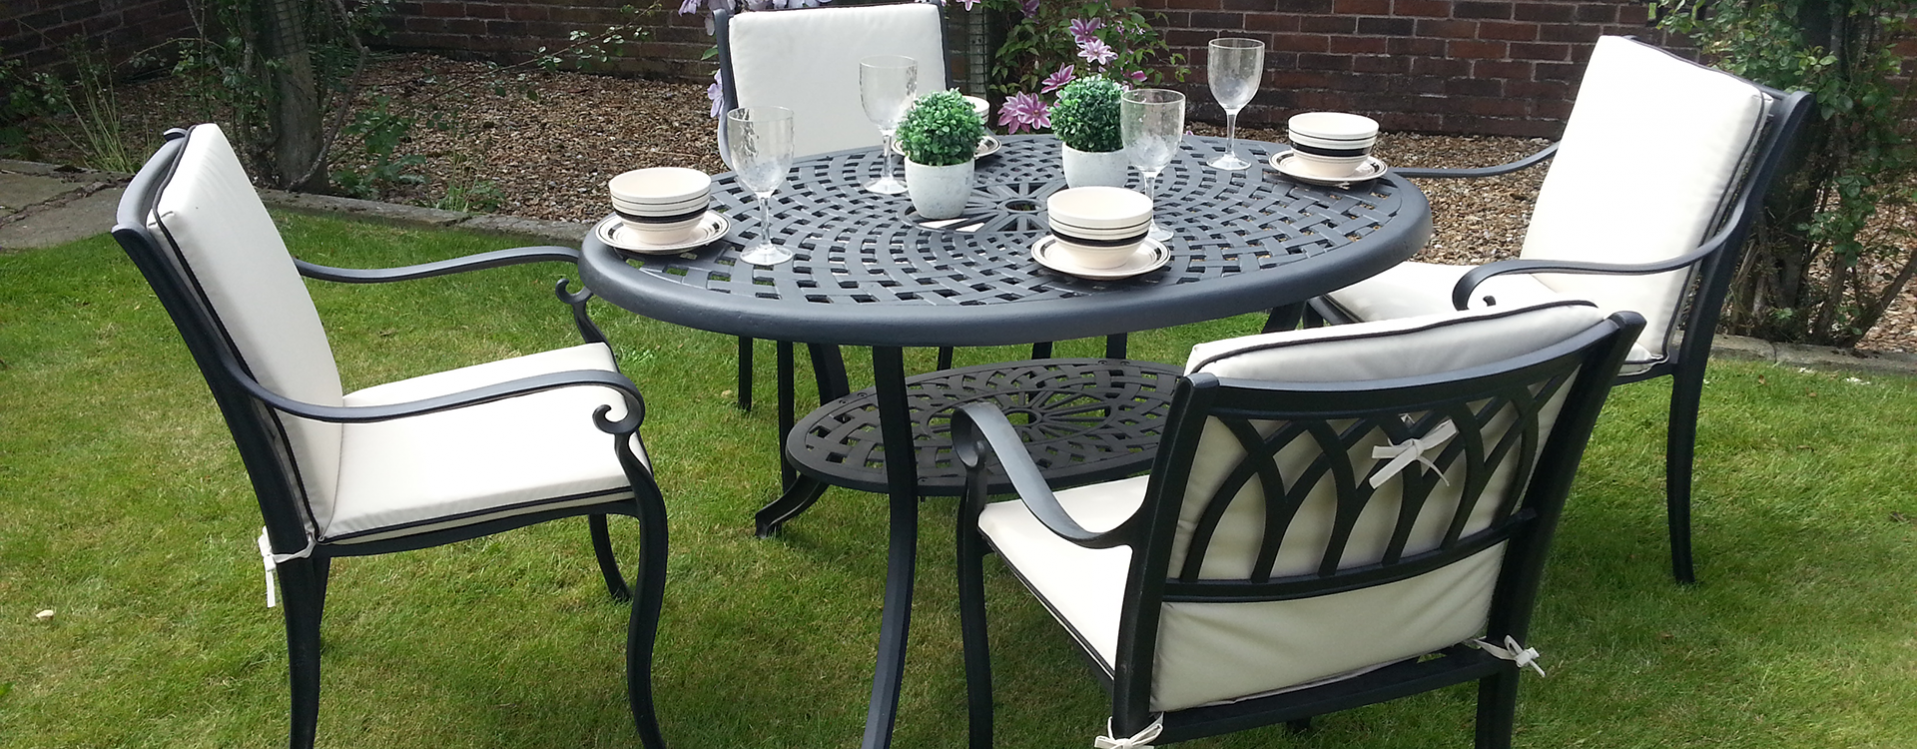 Cast Aluminium Garden Furniture  Free Fast Delivery